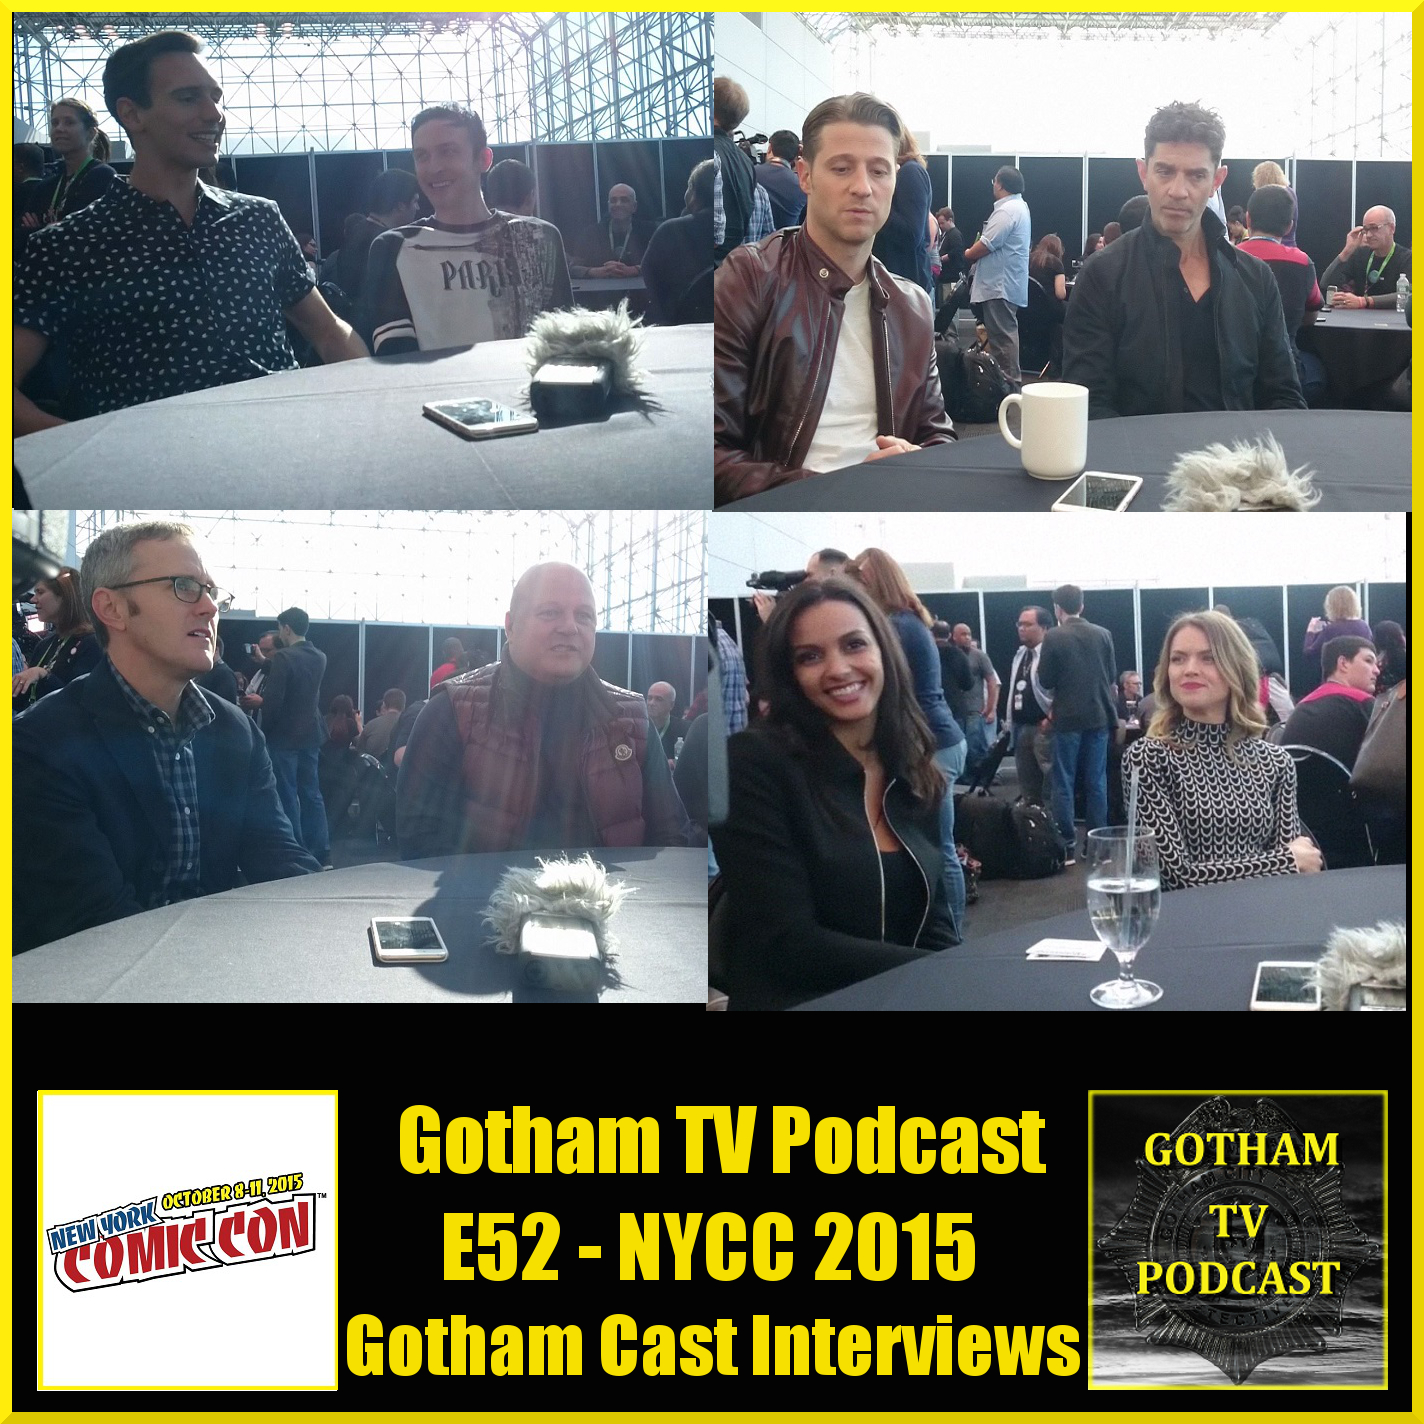 Lucifer Season 1 Episode 4 Promo Spoilers Lucifer S: Gotham Cast Interviews And New York Comic Con Podcast